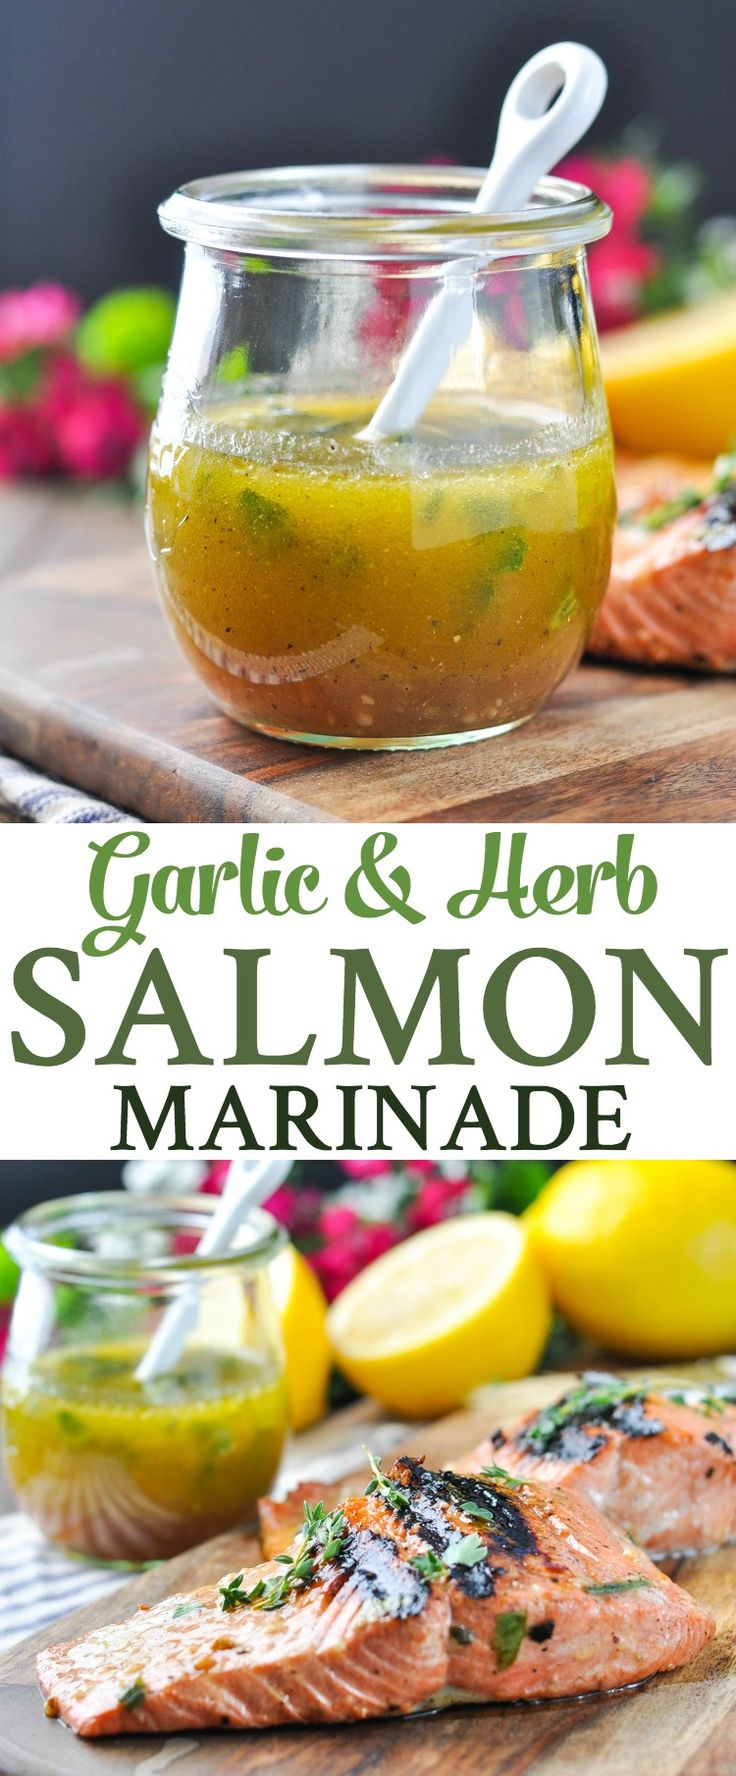 Garlic and Herb Salmon Marinade | Salmon Recipes Healthy | Fish Recipes | Dinner Ideas | Healthy Dinner Recipes | Seafood Recipes | Grilling Recipes | Marinade Recipes